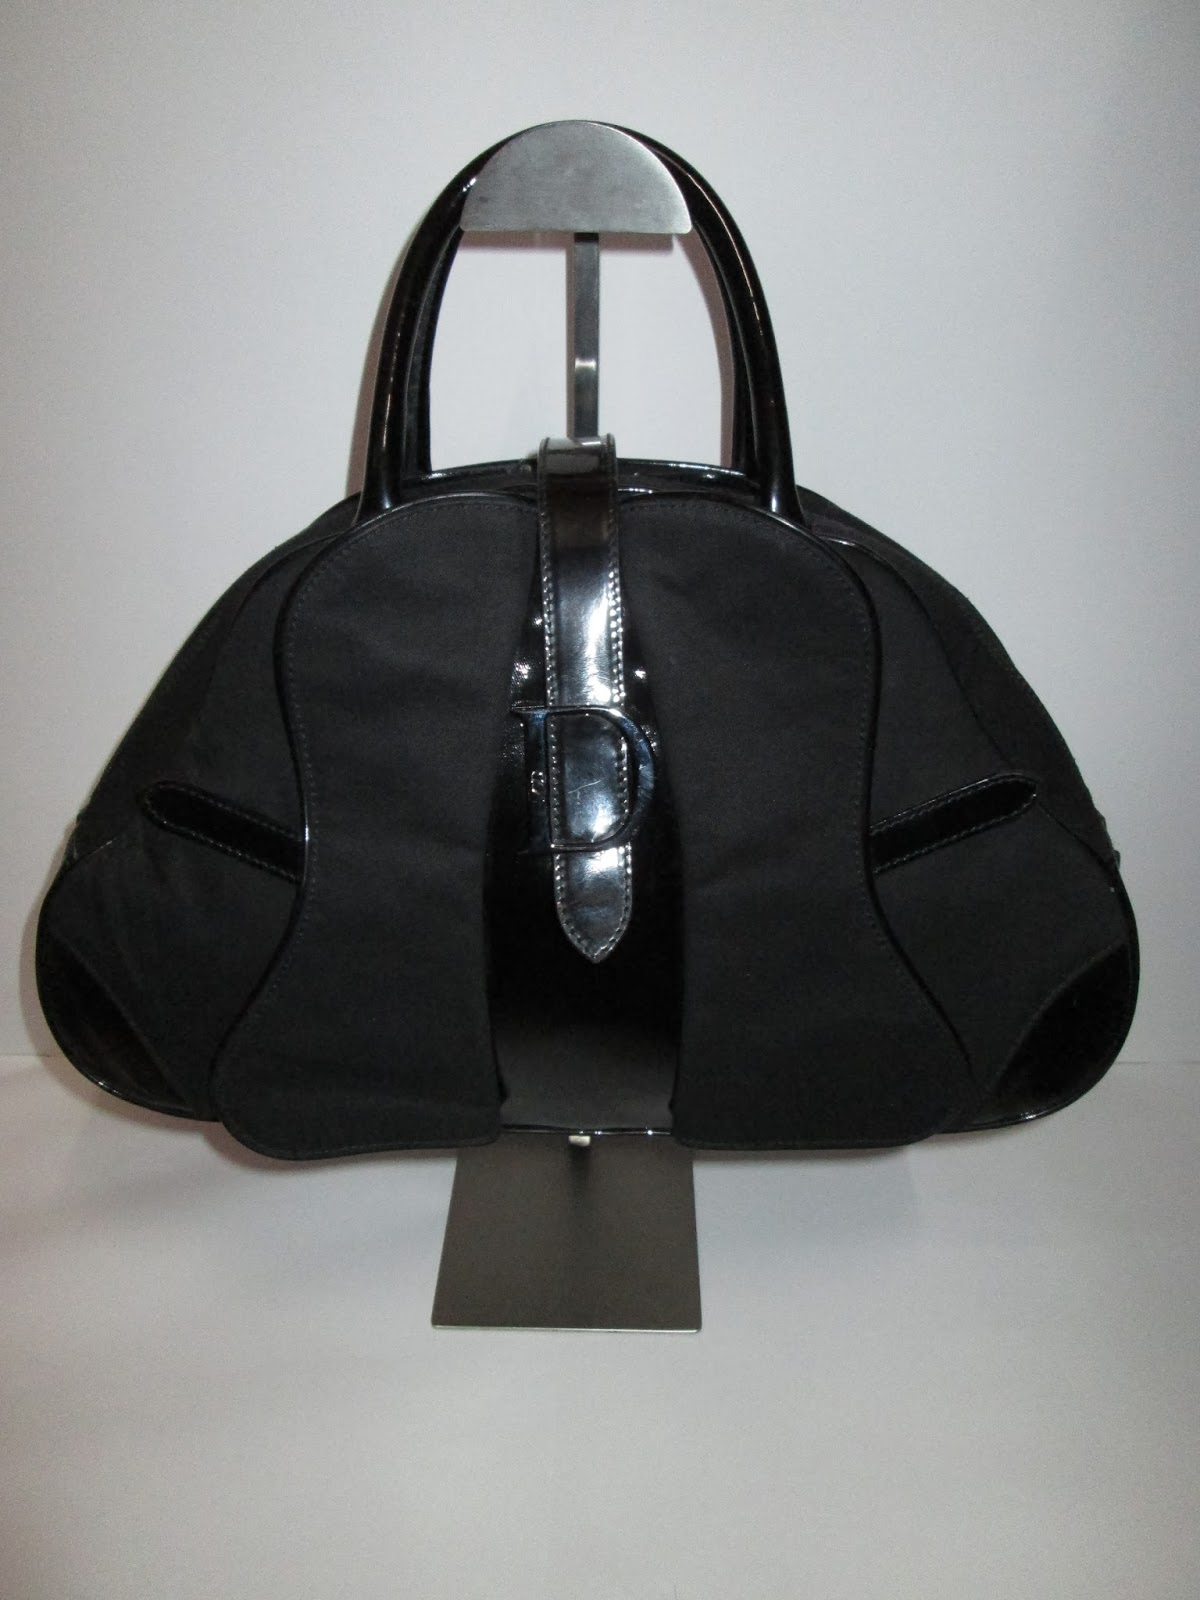 D0rayakeebag Authentic Christian Dior Paillette Bowling